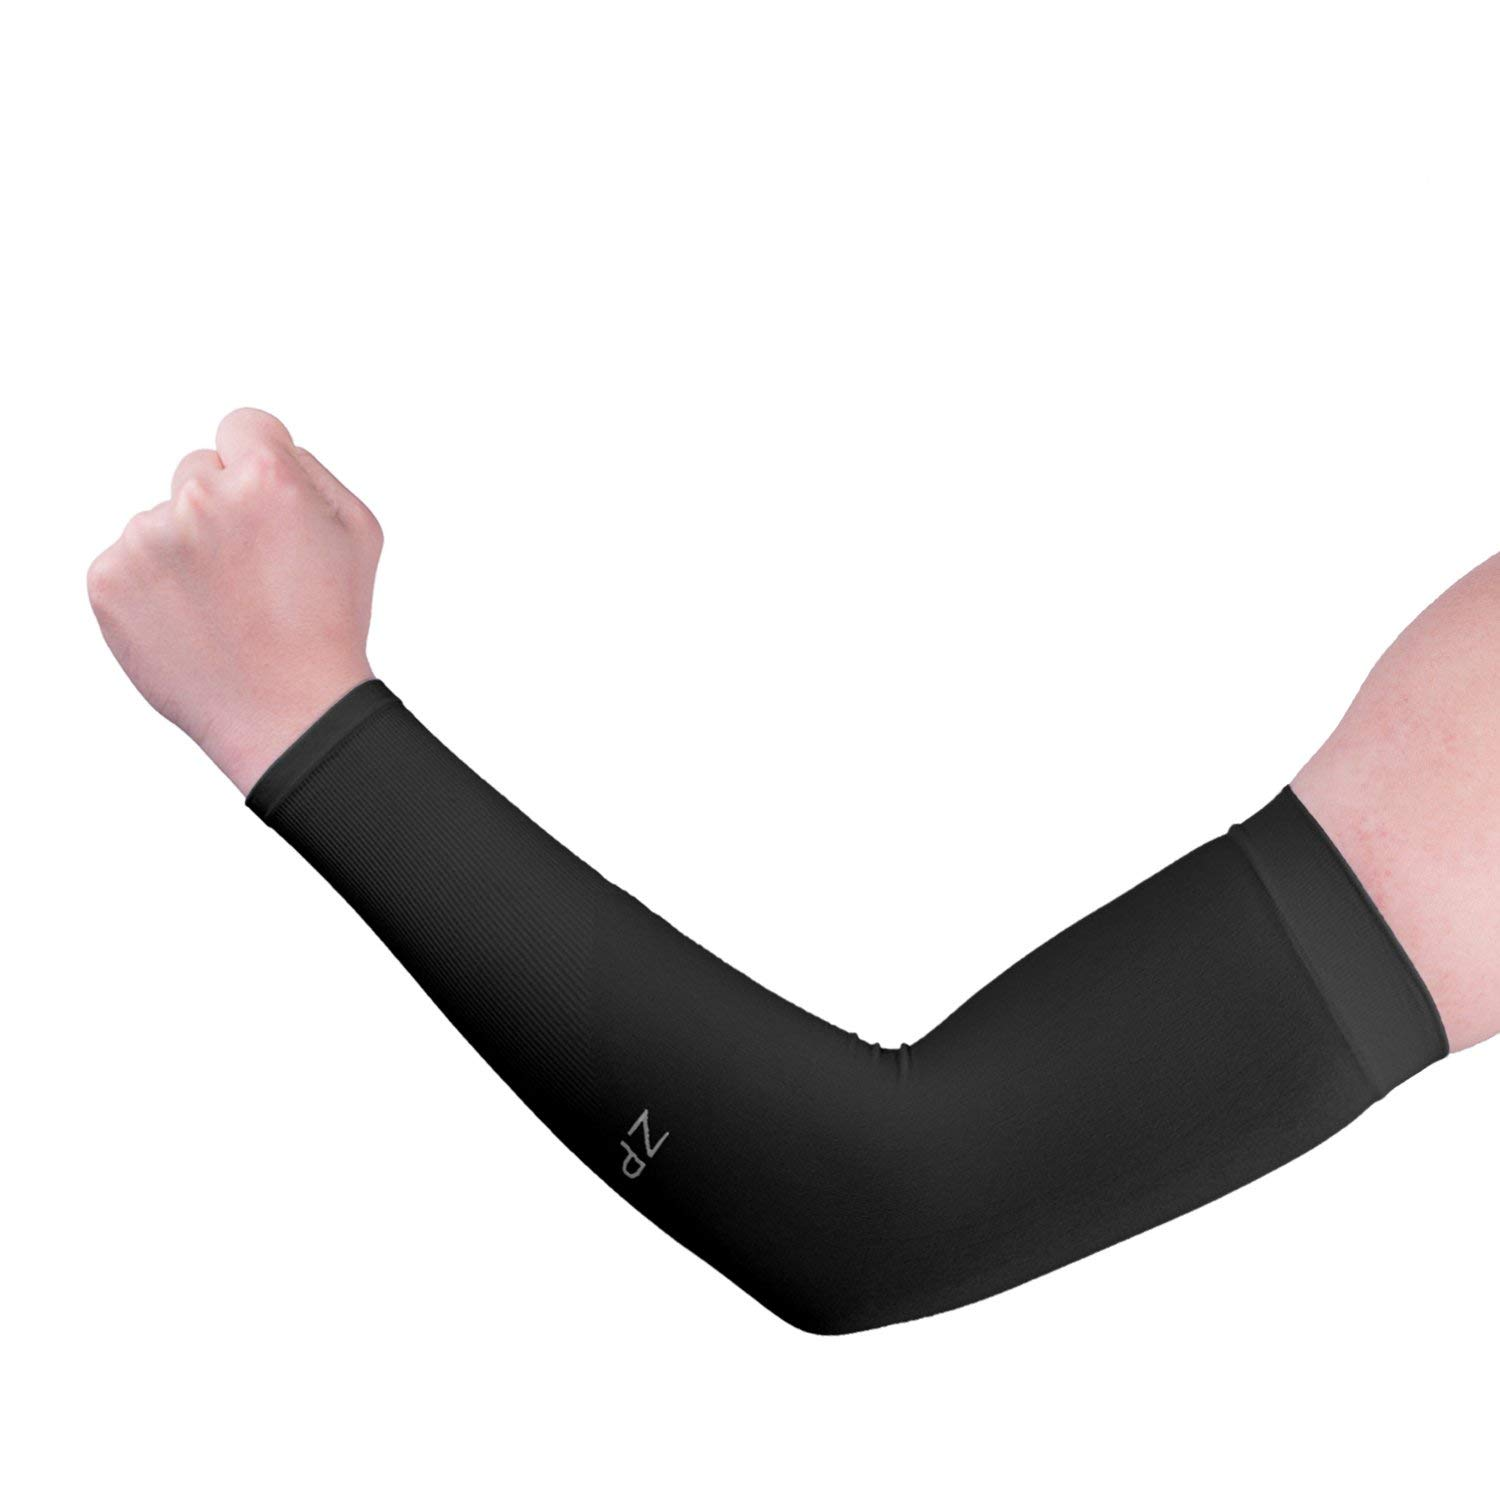 e41714e1a5 Get Quotations · Sun UV Protection Cooling Sleeves Cool Arm Gloves Cold  Golf Driving Sleeve for Men and Women